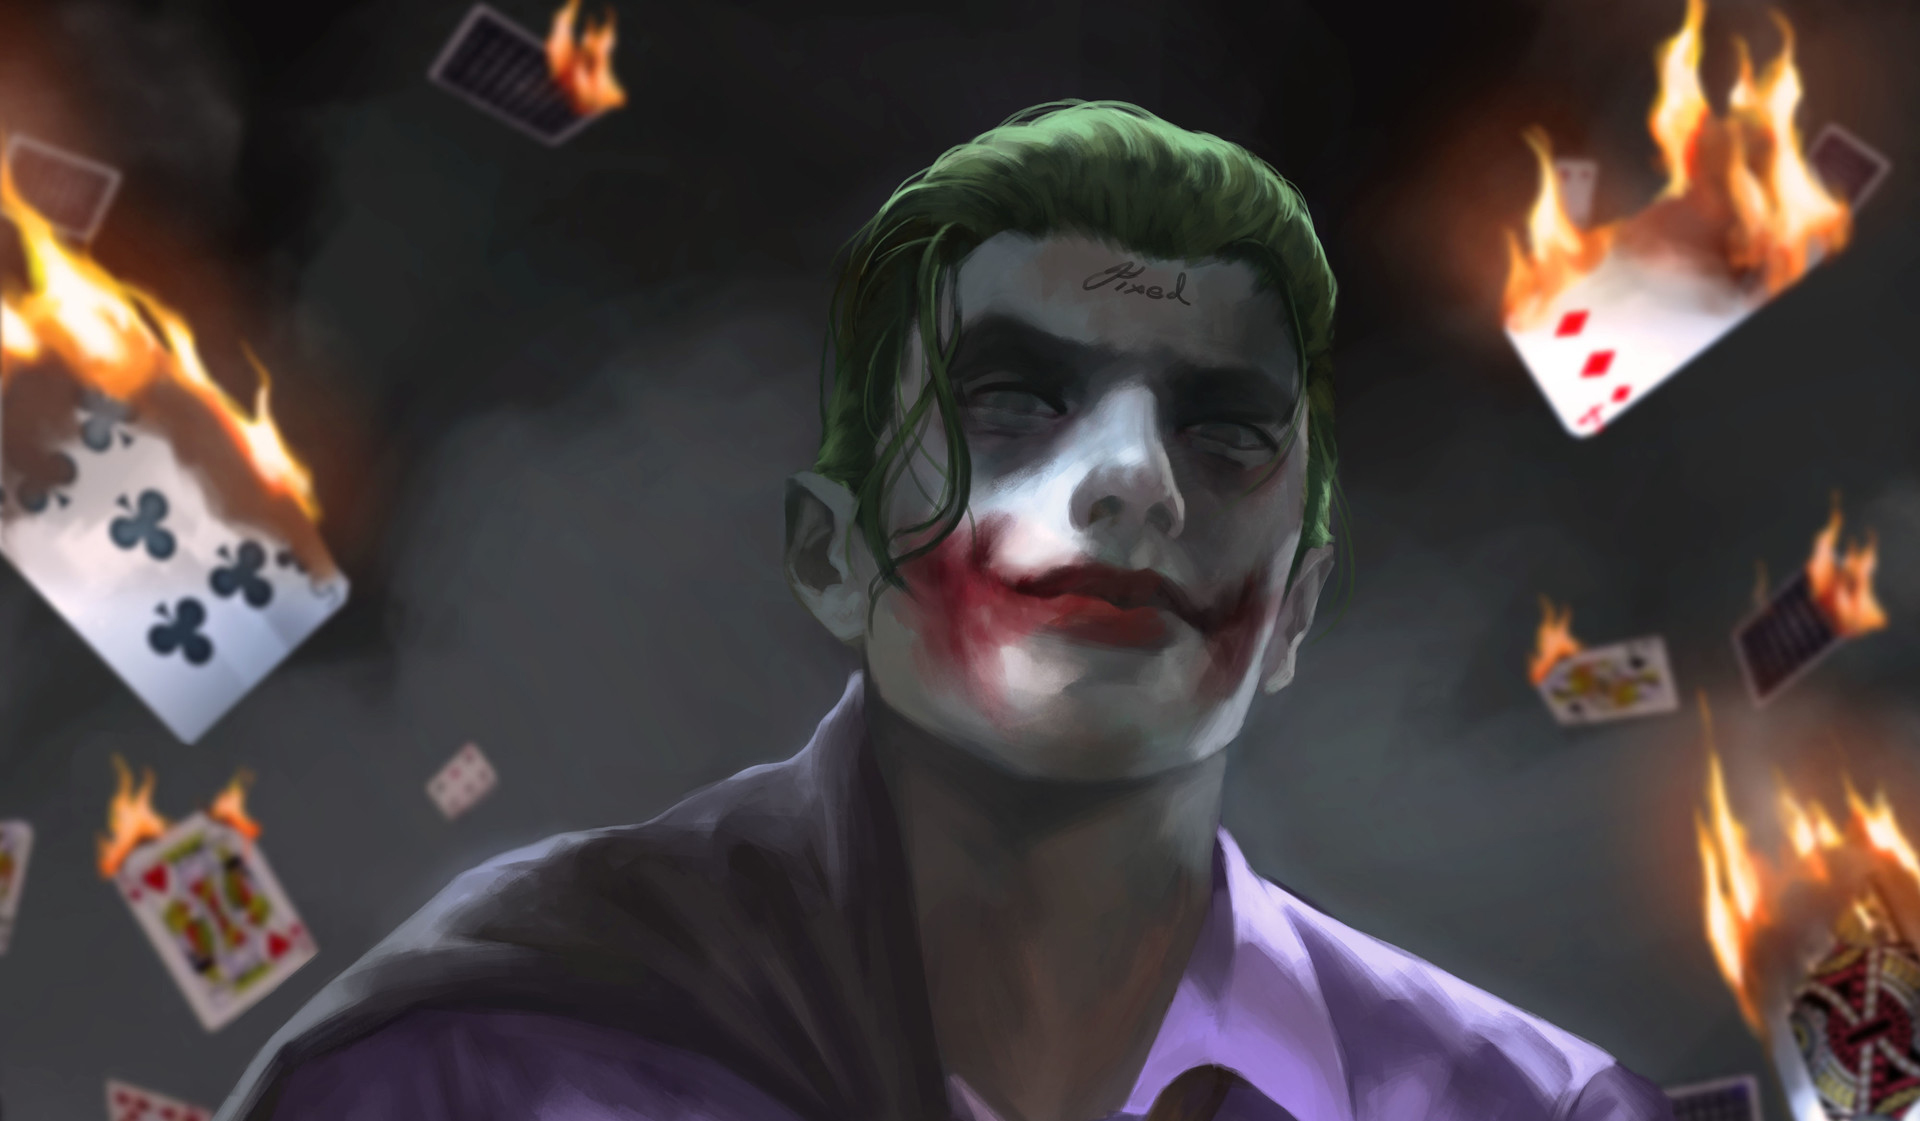 Wallpaper keren 3d hd joker for Joker immagini hd